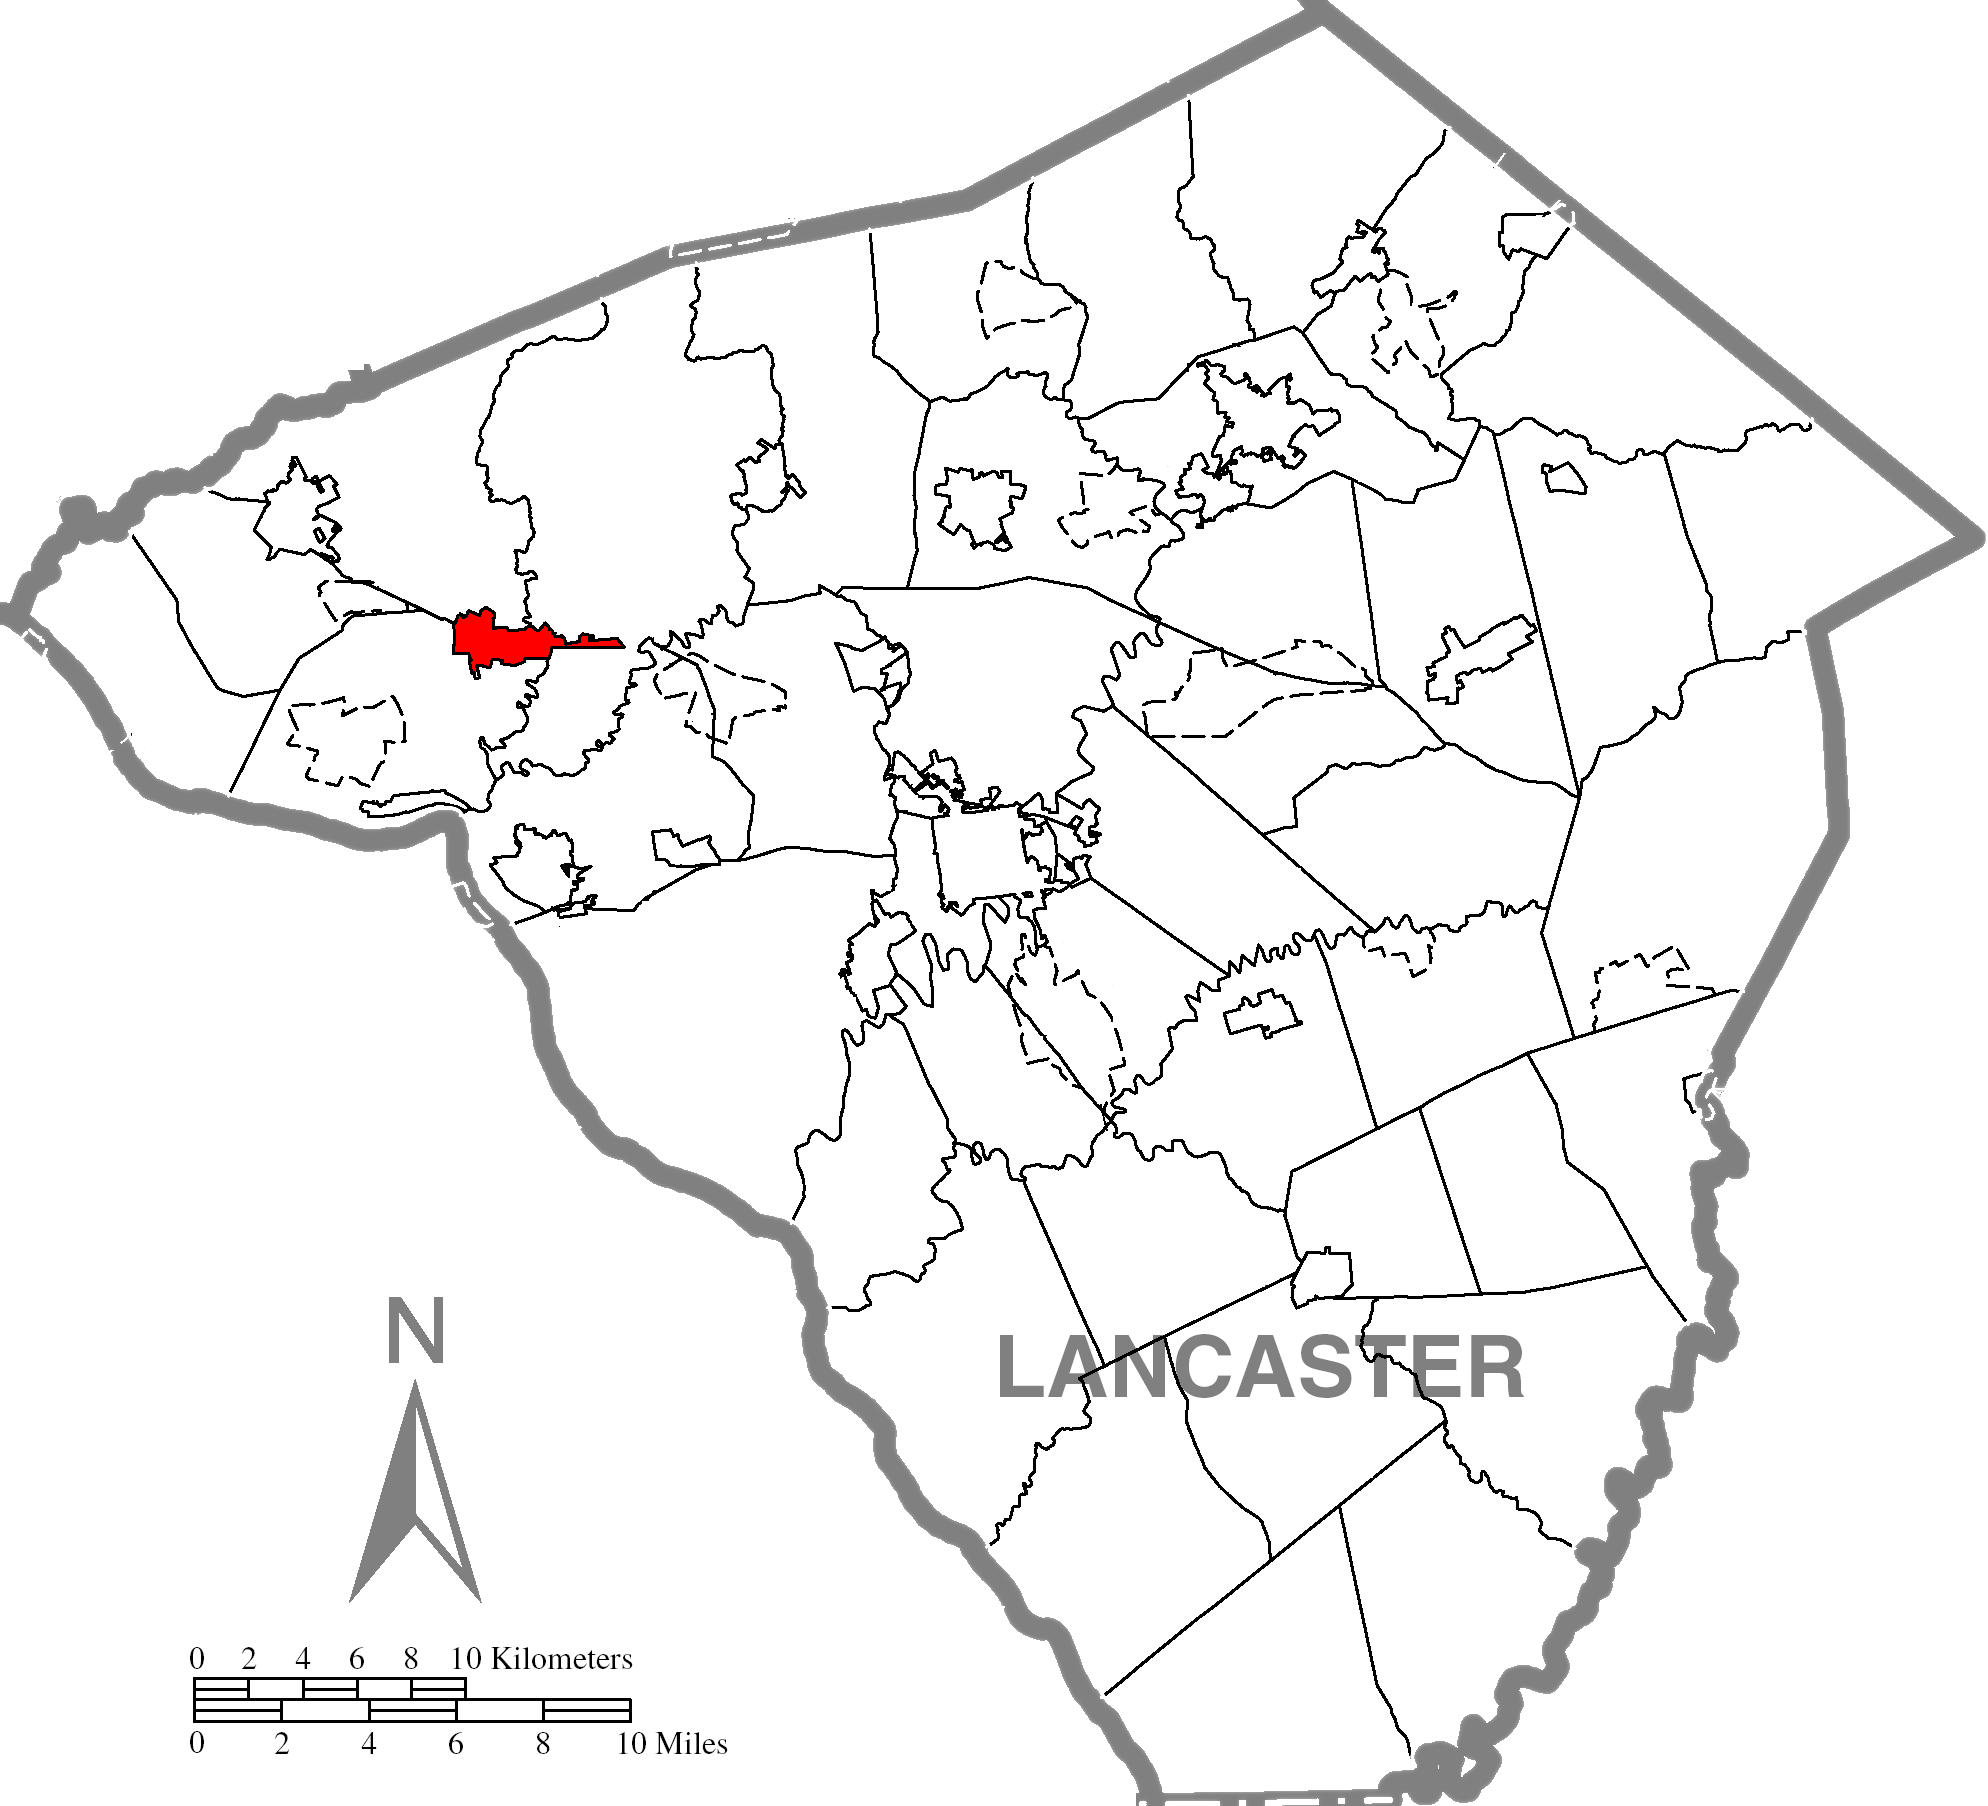 Mount Joyc Lancaster County Highlighted